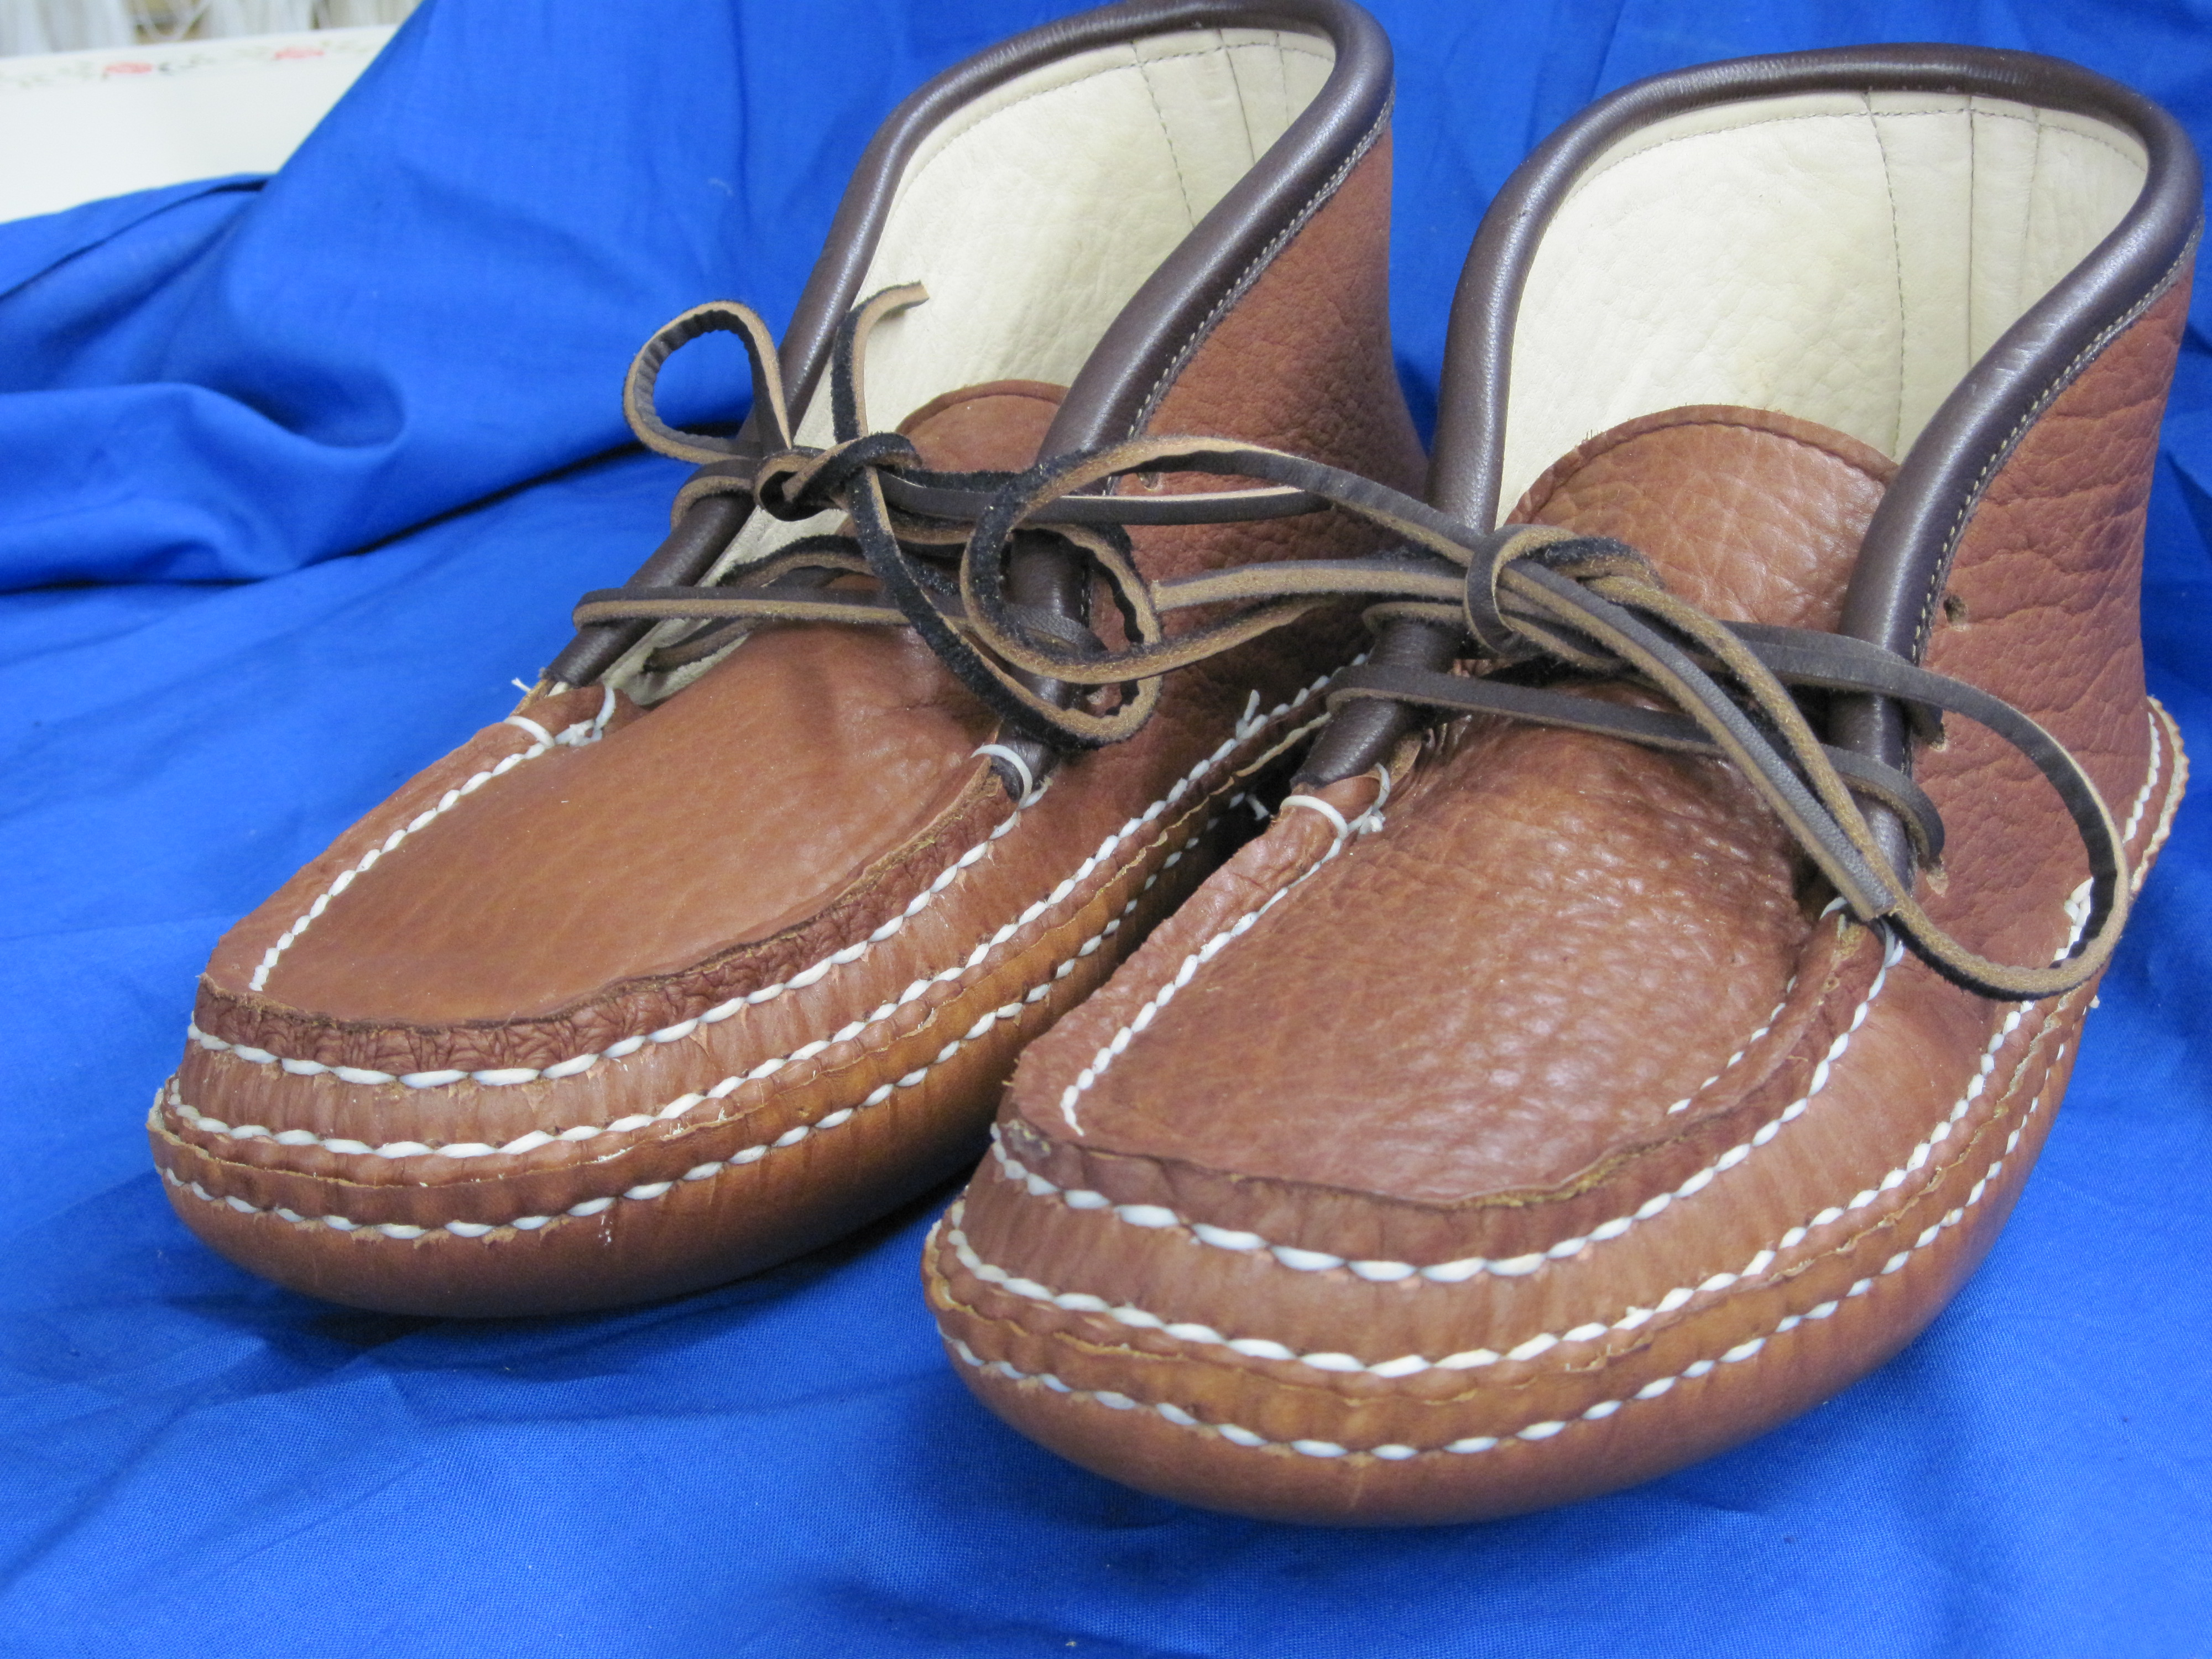 Lace Boots Carl Dyers Original Moccasins